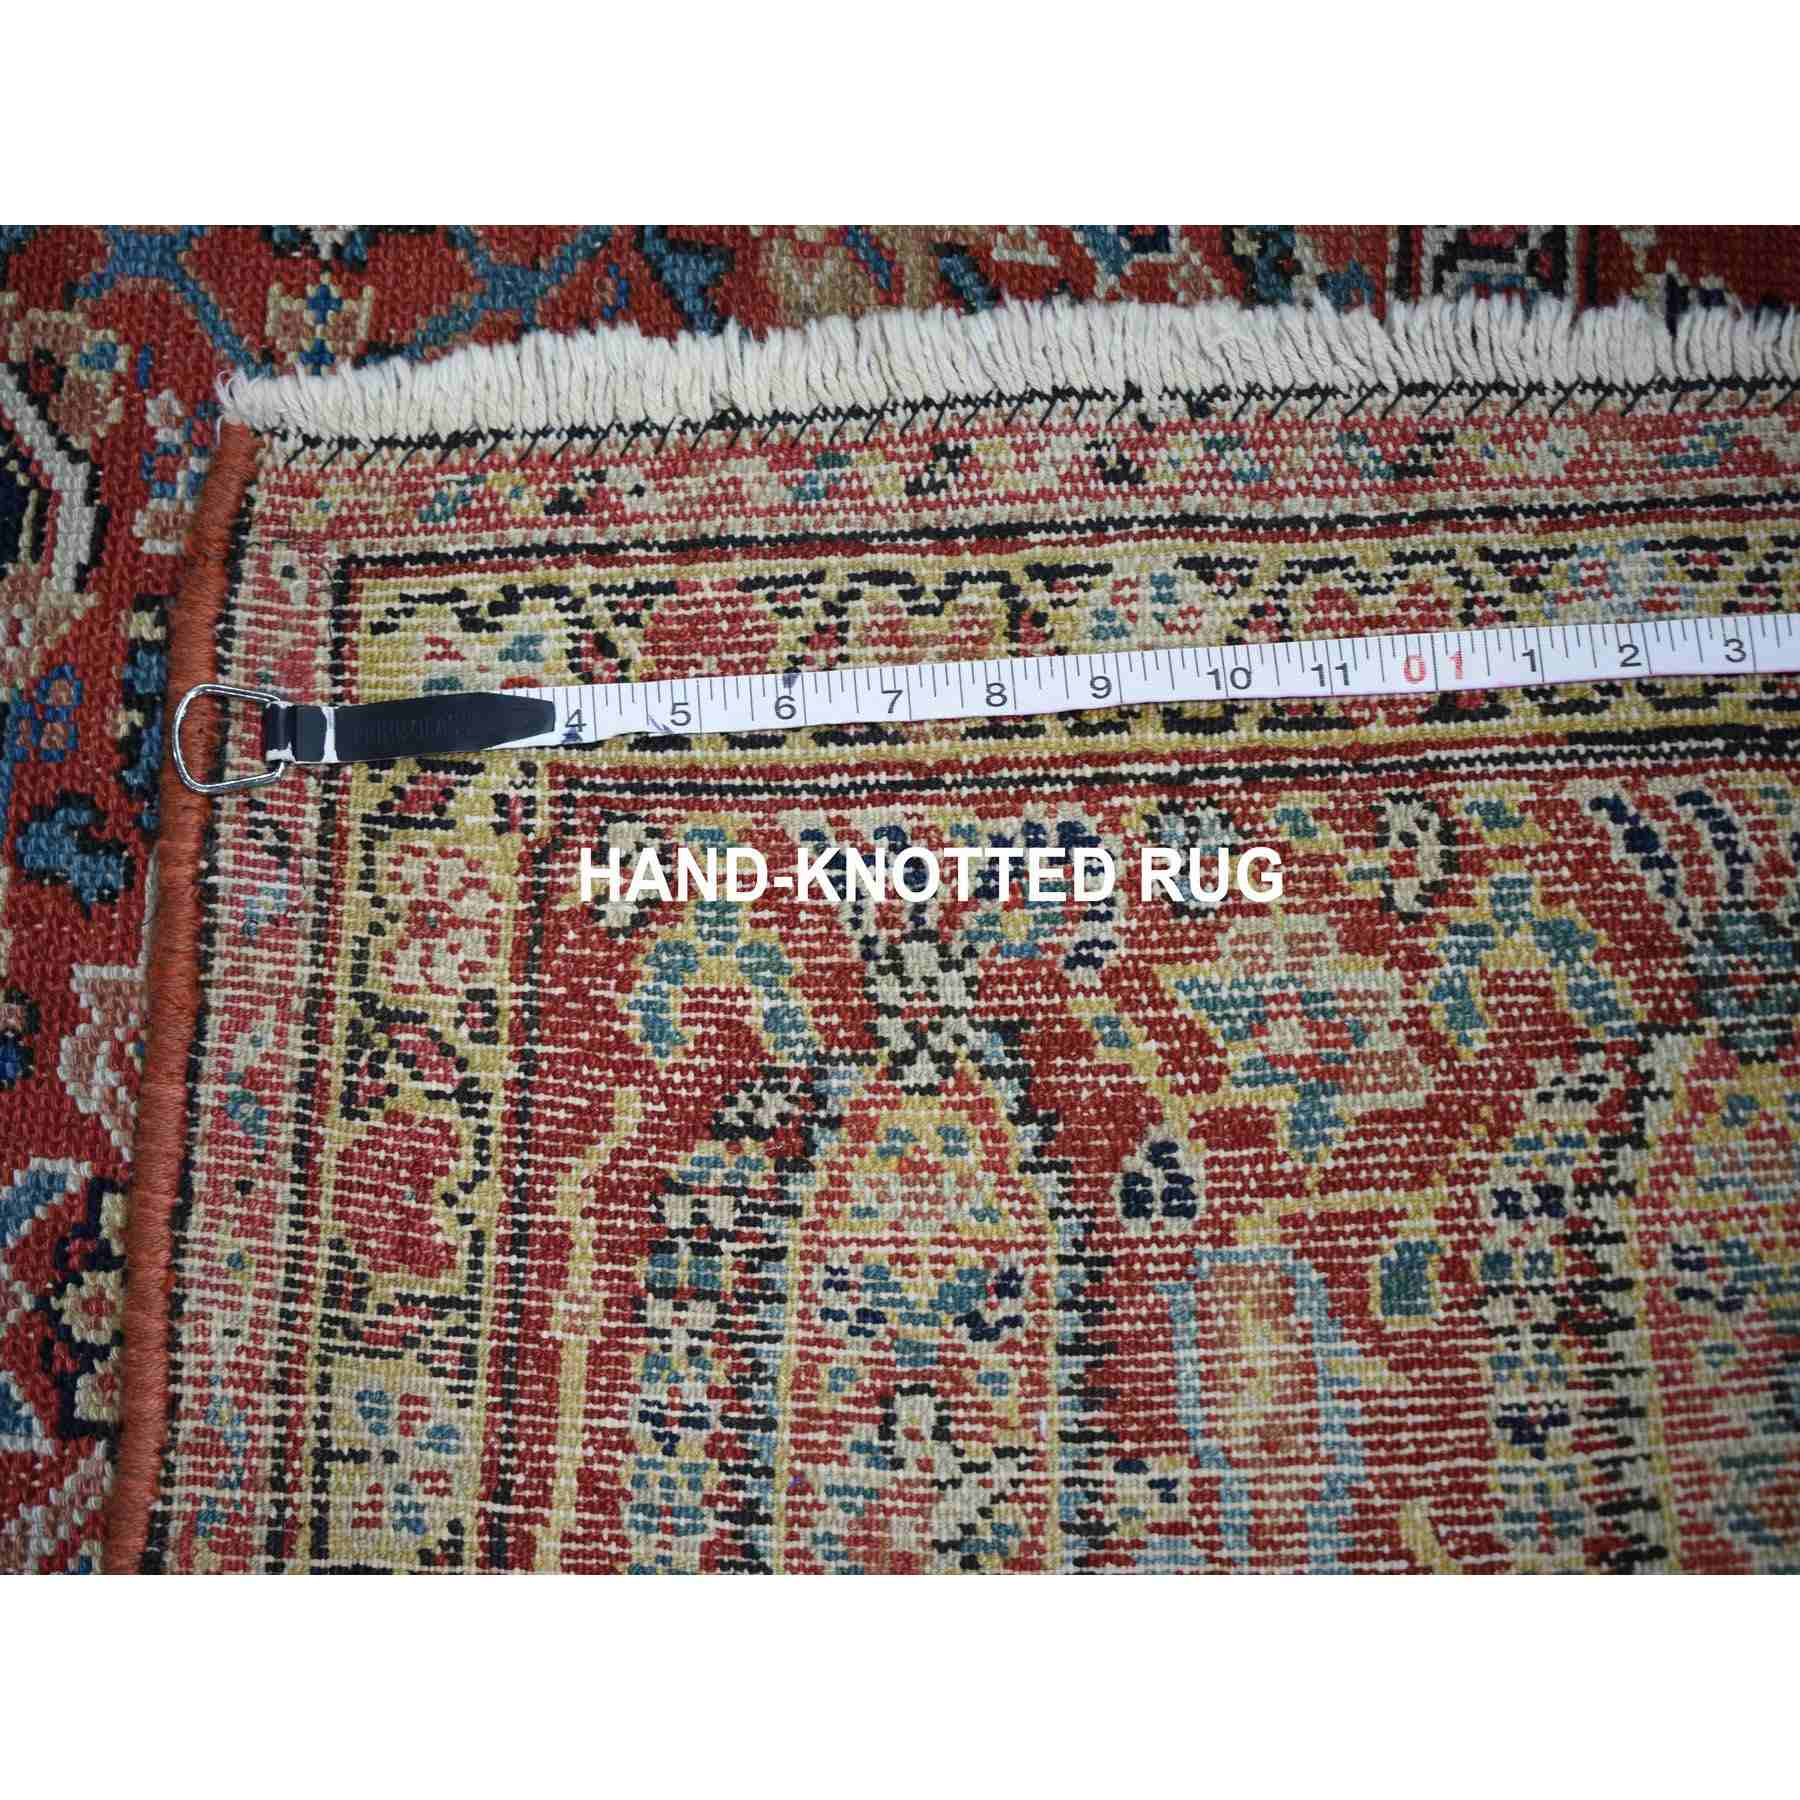 Antique-Hand-Knotted-Rug-249020